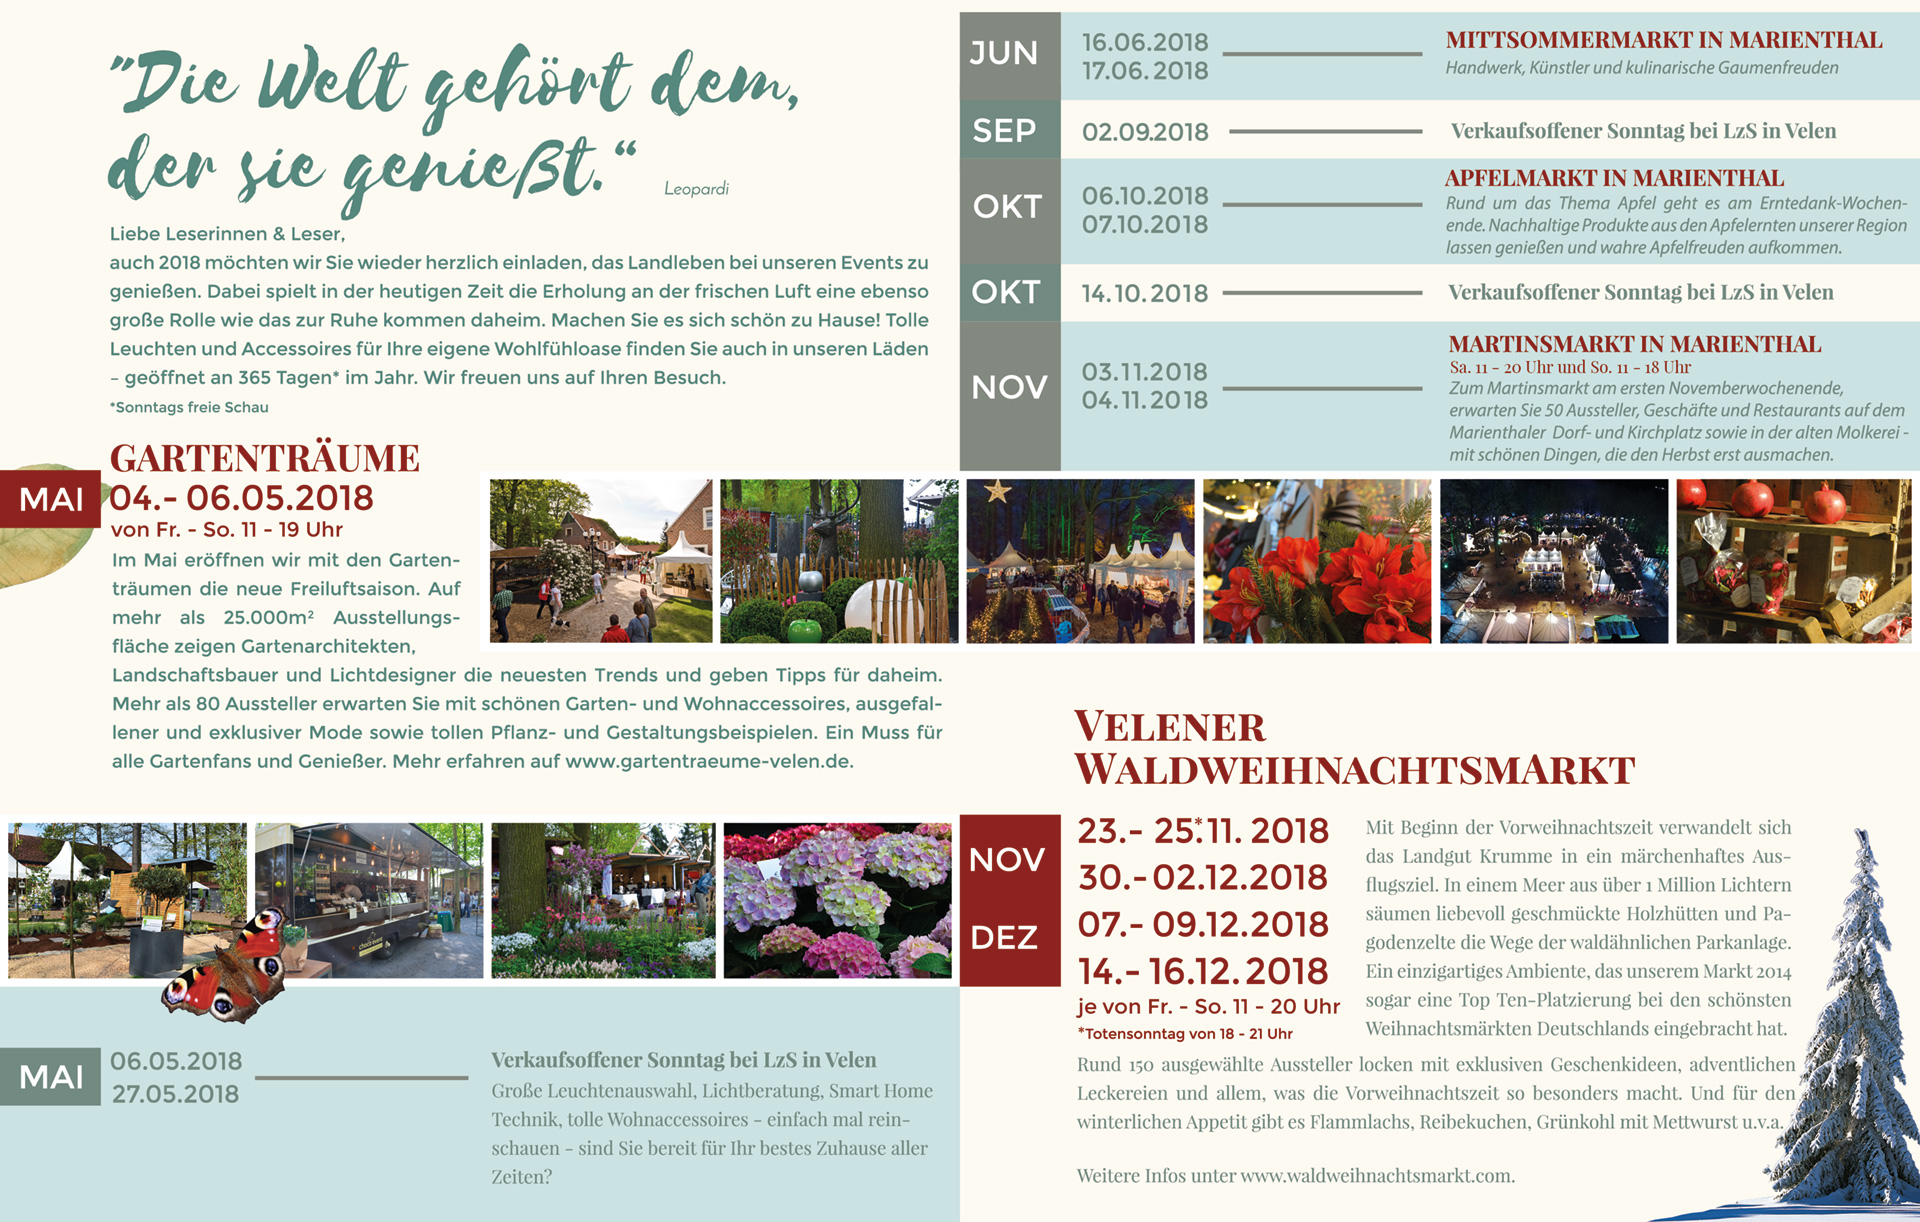 Eventflyer-Landgut-Krumme-2018